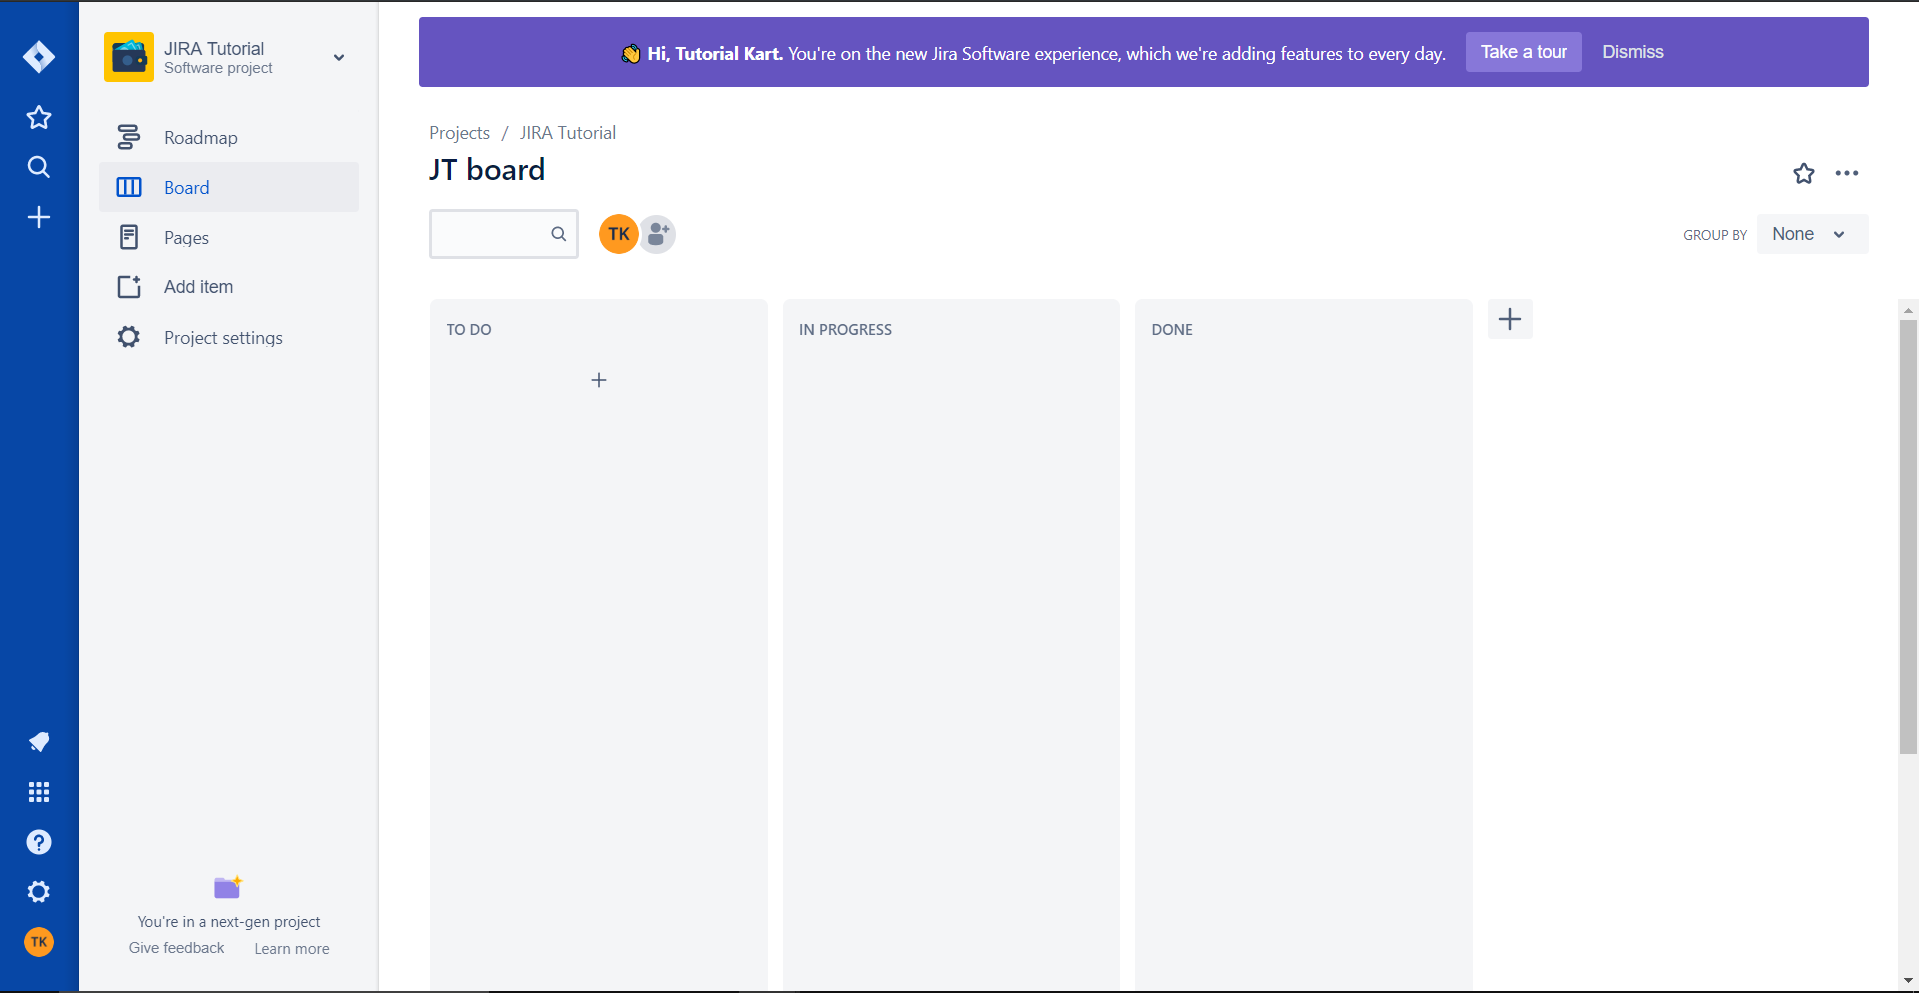 JIRA Tutorial - Project Dashboard